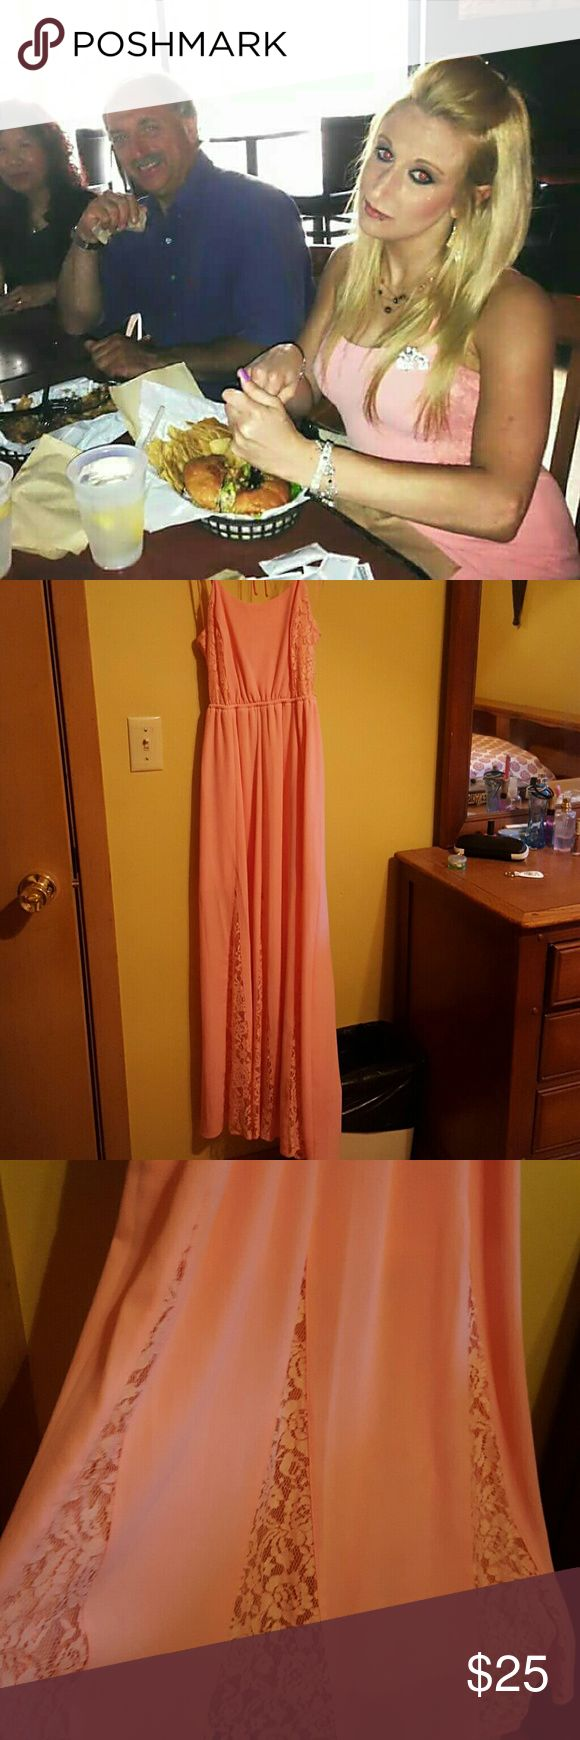 Summer sundress Light pink/peach beautiful strappy summer sundress. Skirt flares out on bottom with interior lace accent. Only worn once. No damage, like new. I have pics of me wearing it. Please comment to inquire and I'll get them to you. Candie's Dresses